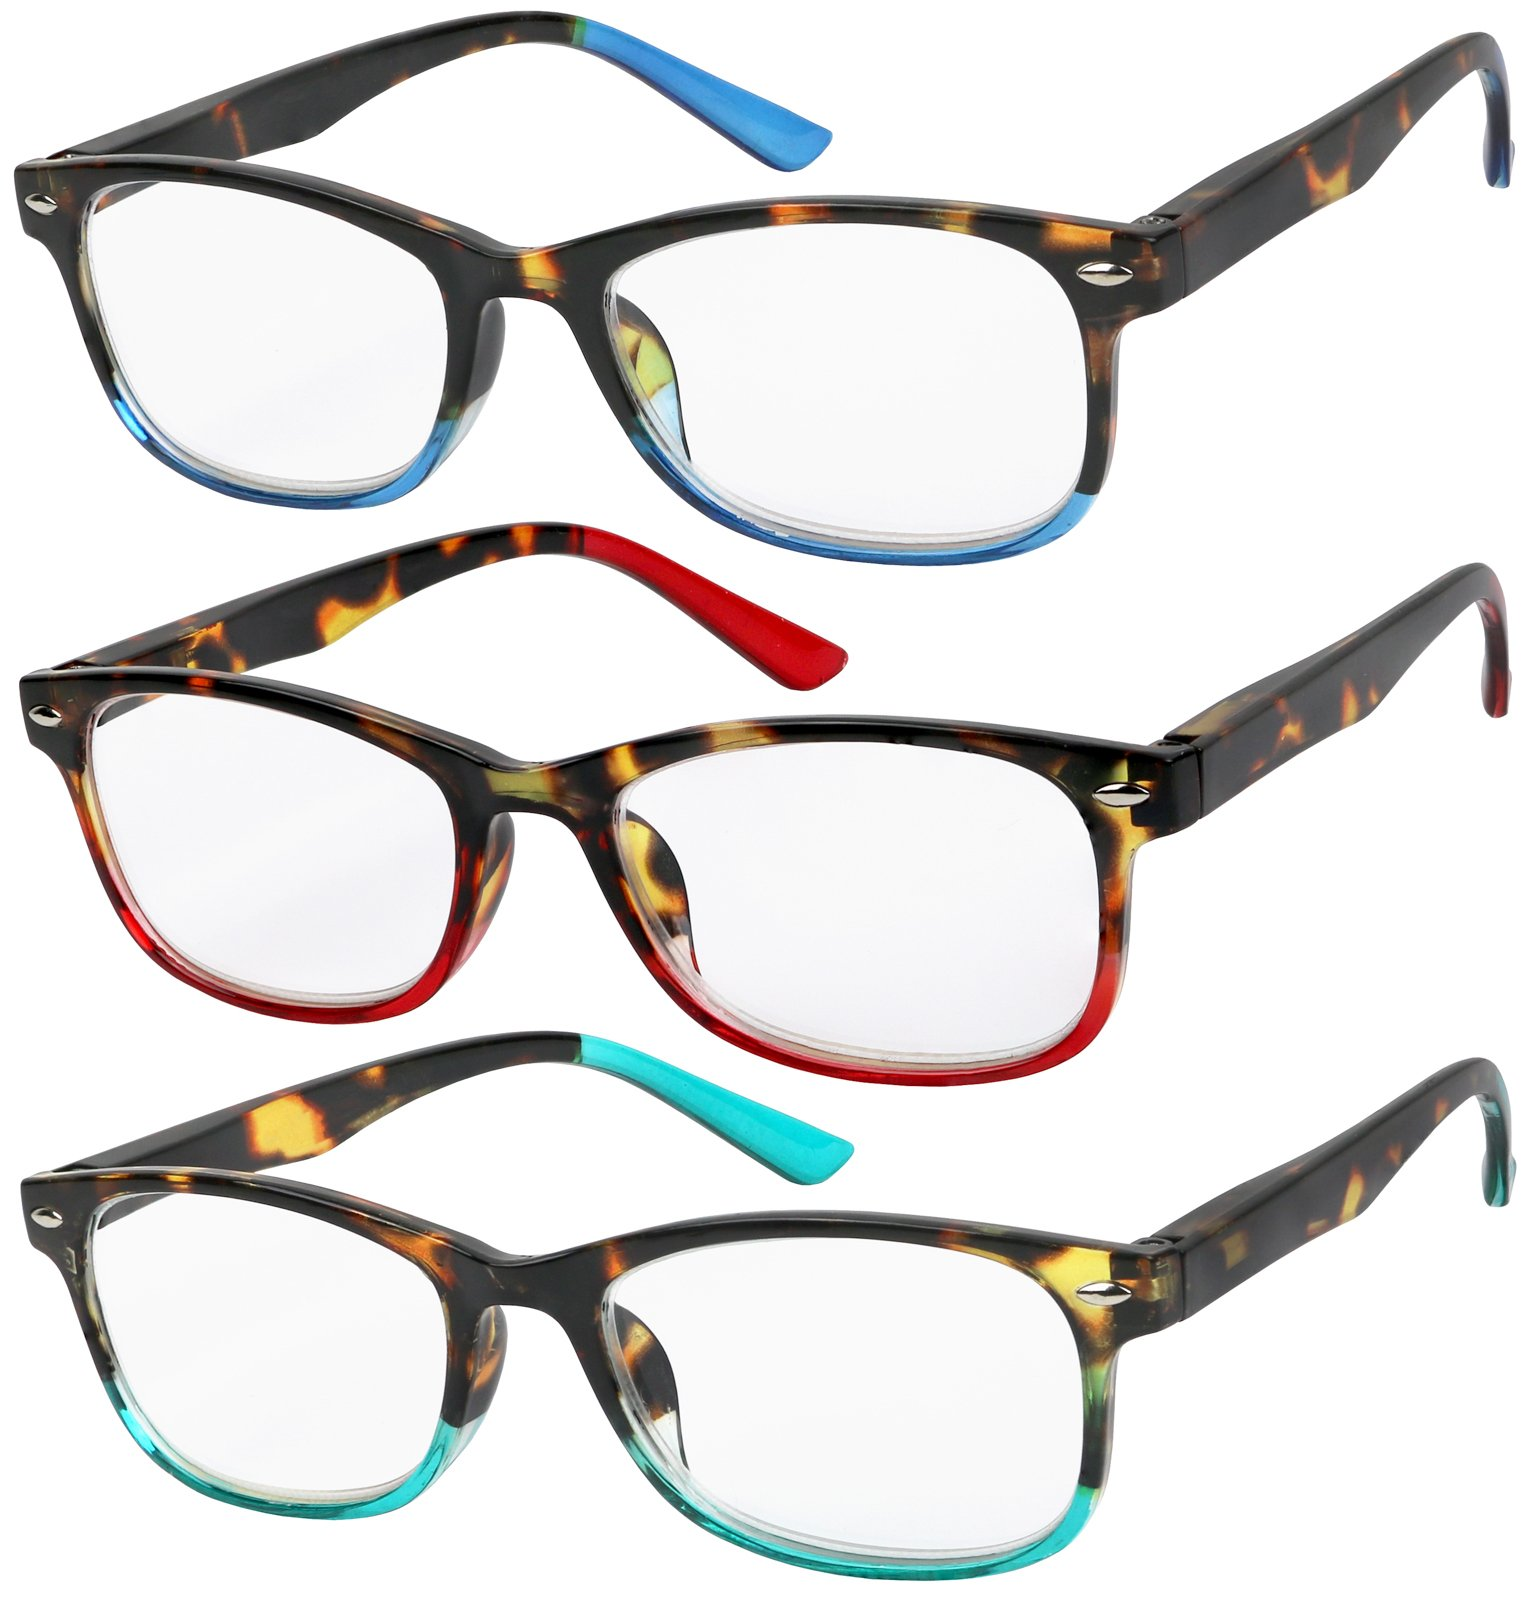 Reading Glasses Set of 3 Great Value Spring Hinge Readers Men and Women Glasses for Reading +1.5 by Success Eyewear